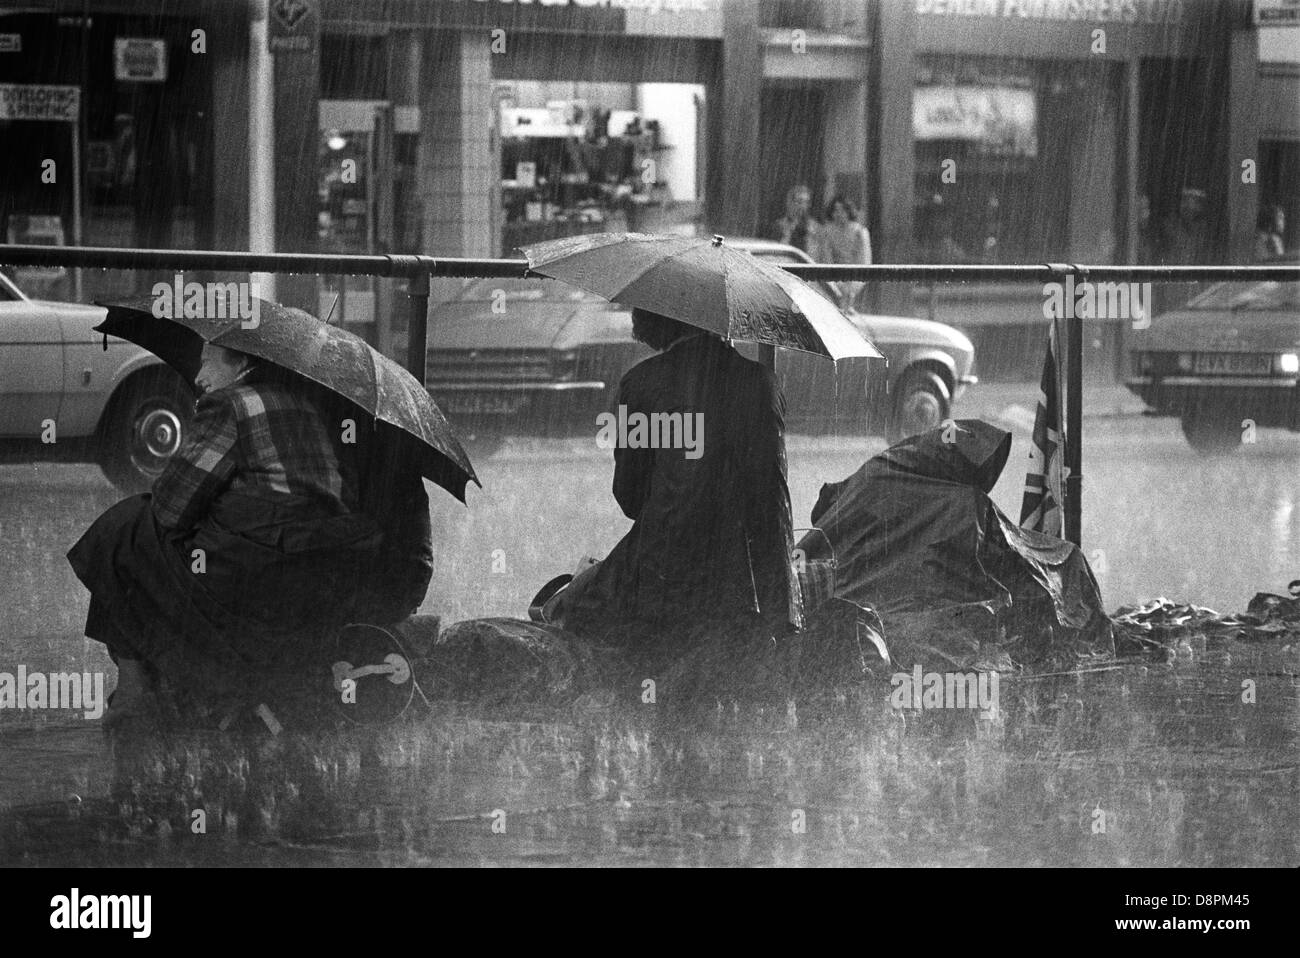 Bad weather Queens Silver Jubilee 1977  people securing a good position to see the Silver Jubilee procession wait - Stock Image